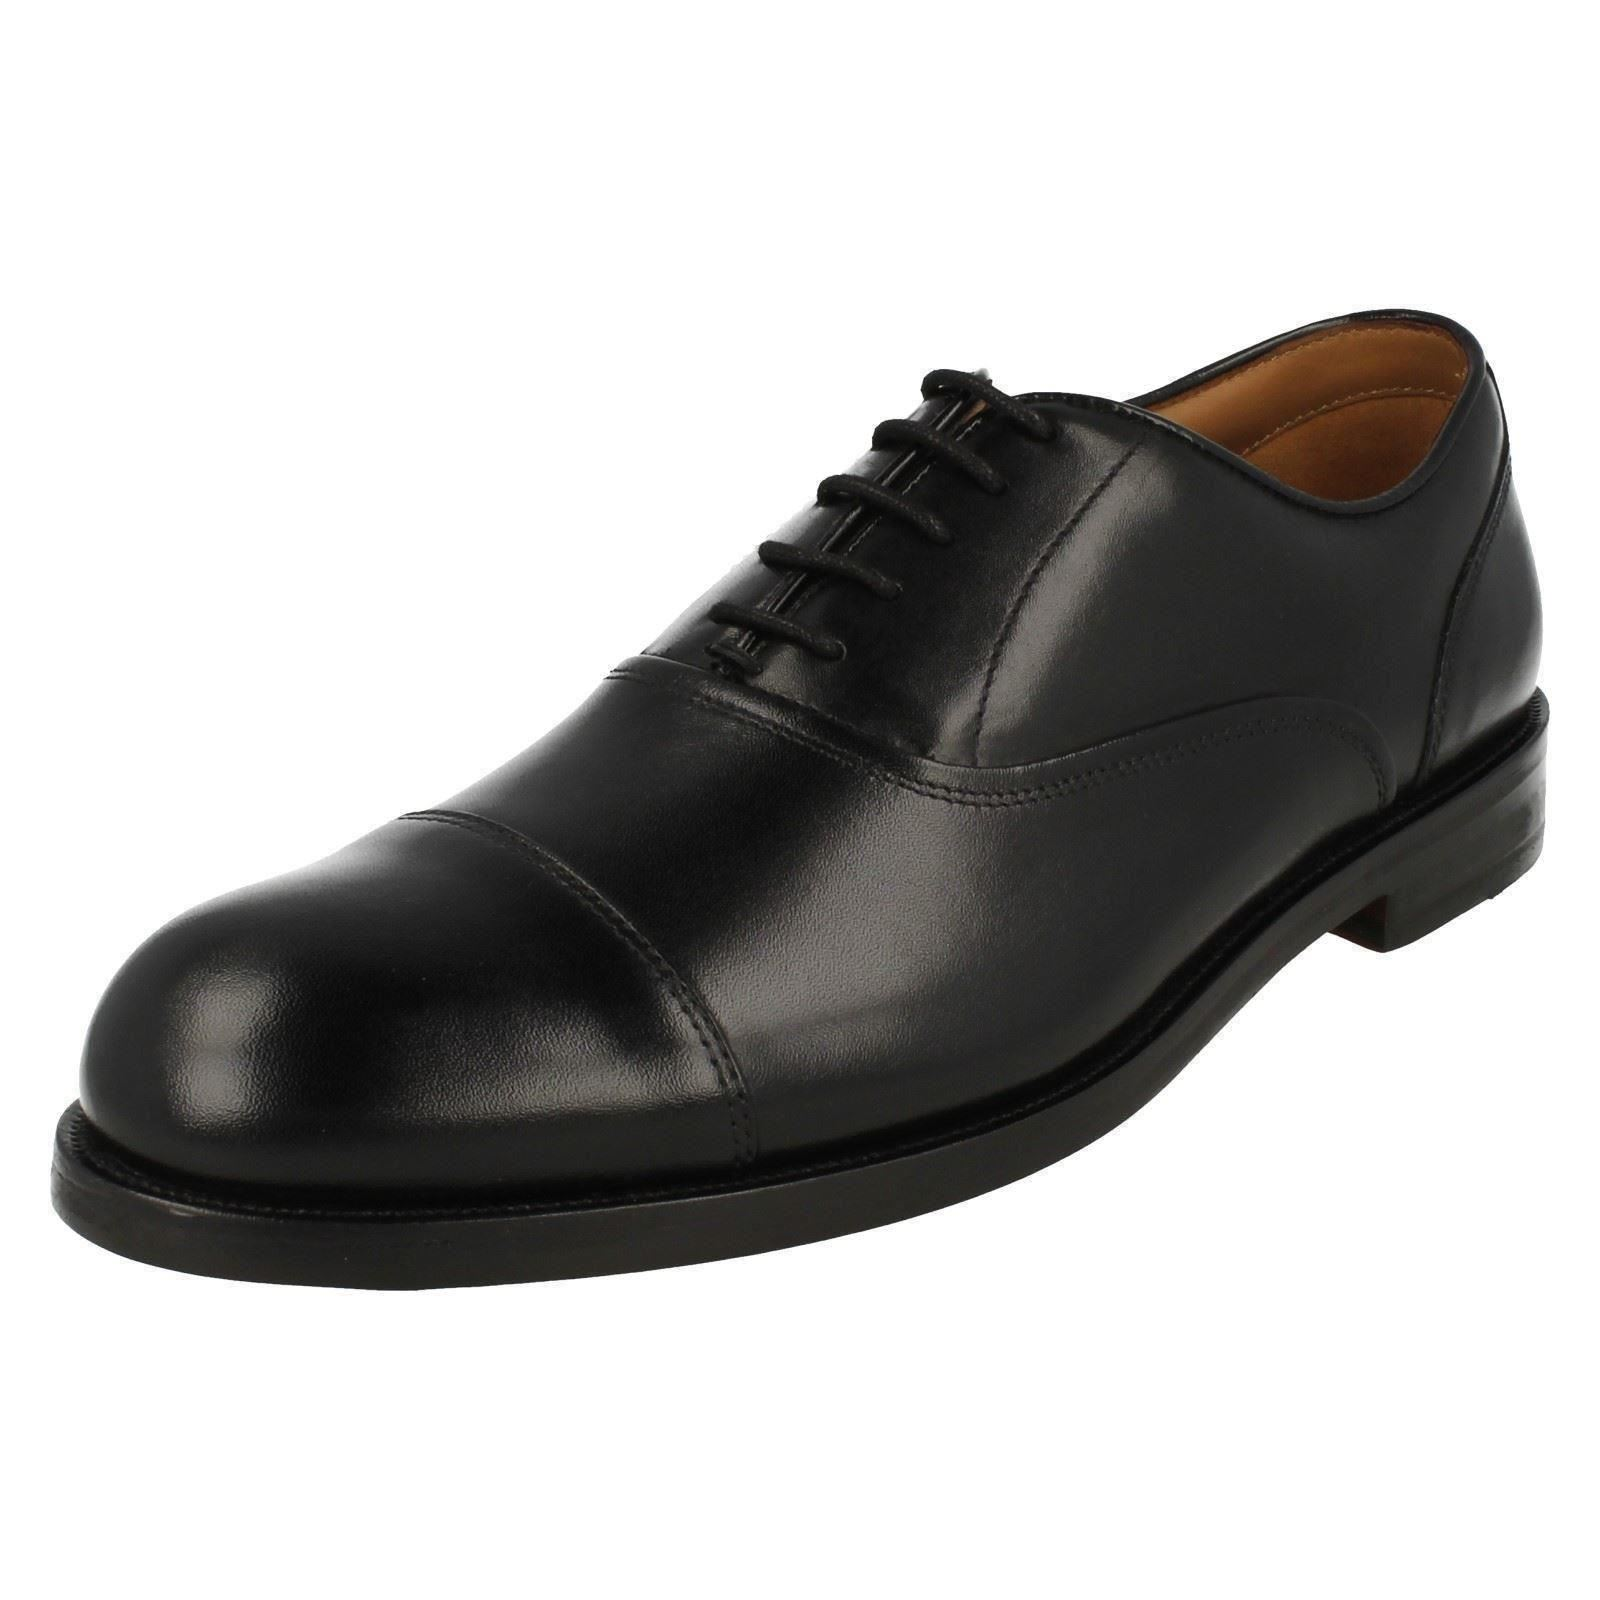 Homme Clarks Formal Style Oxford Chaussures Chaussures Chaussures